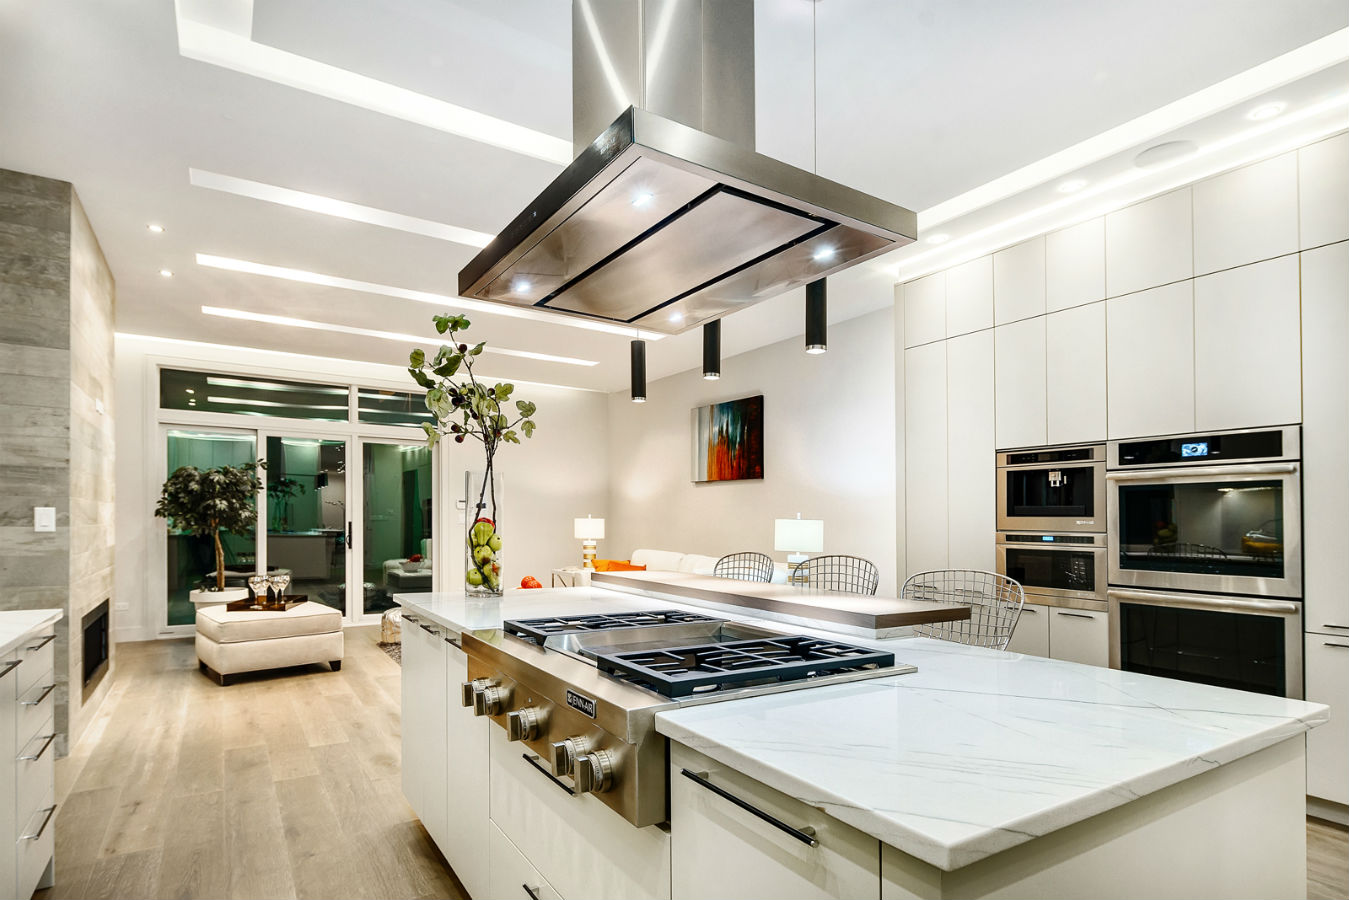 Chicago Home Builders | New Home Construction, Remodeling